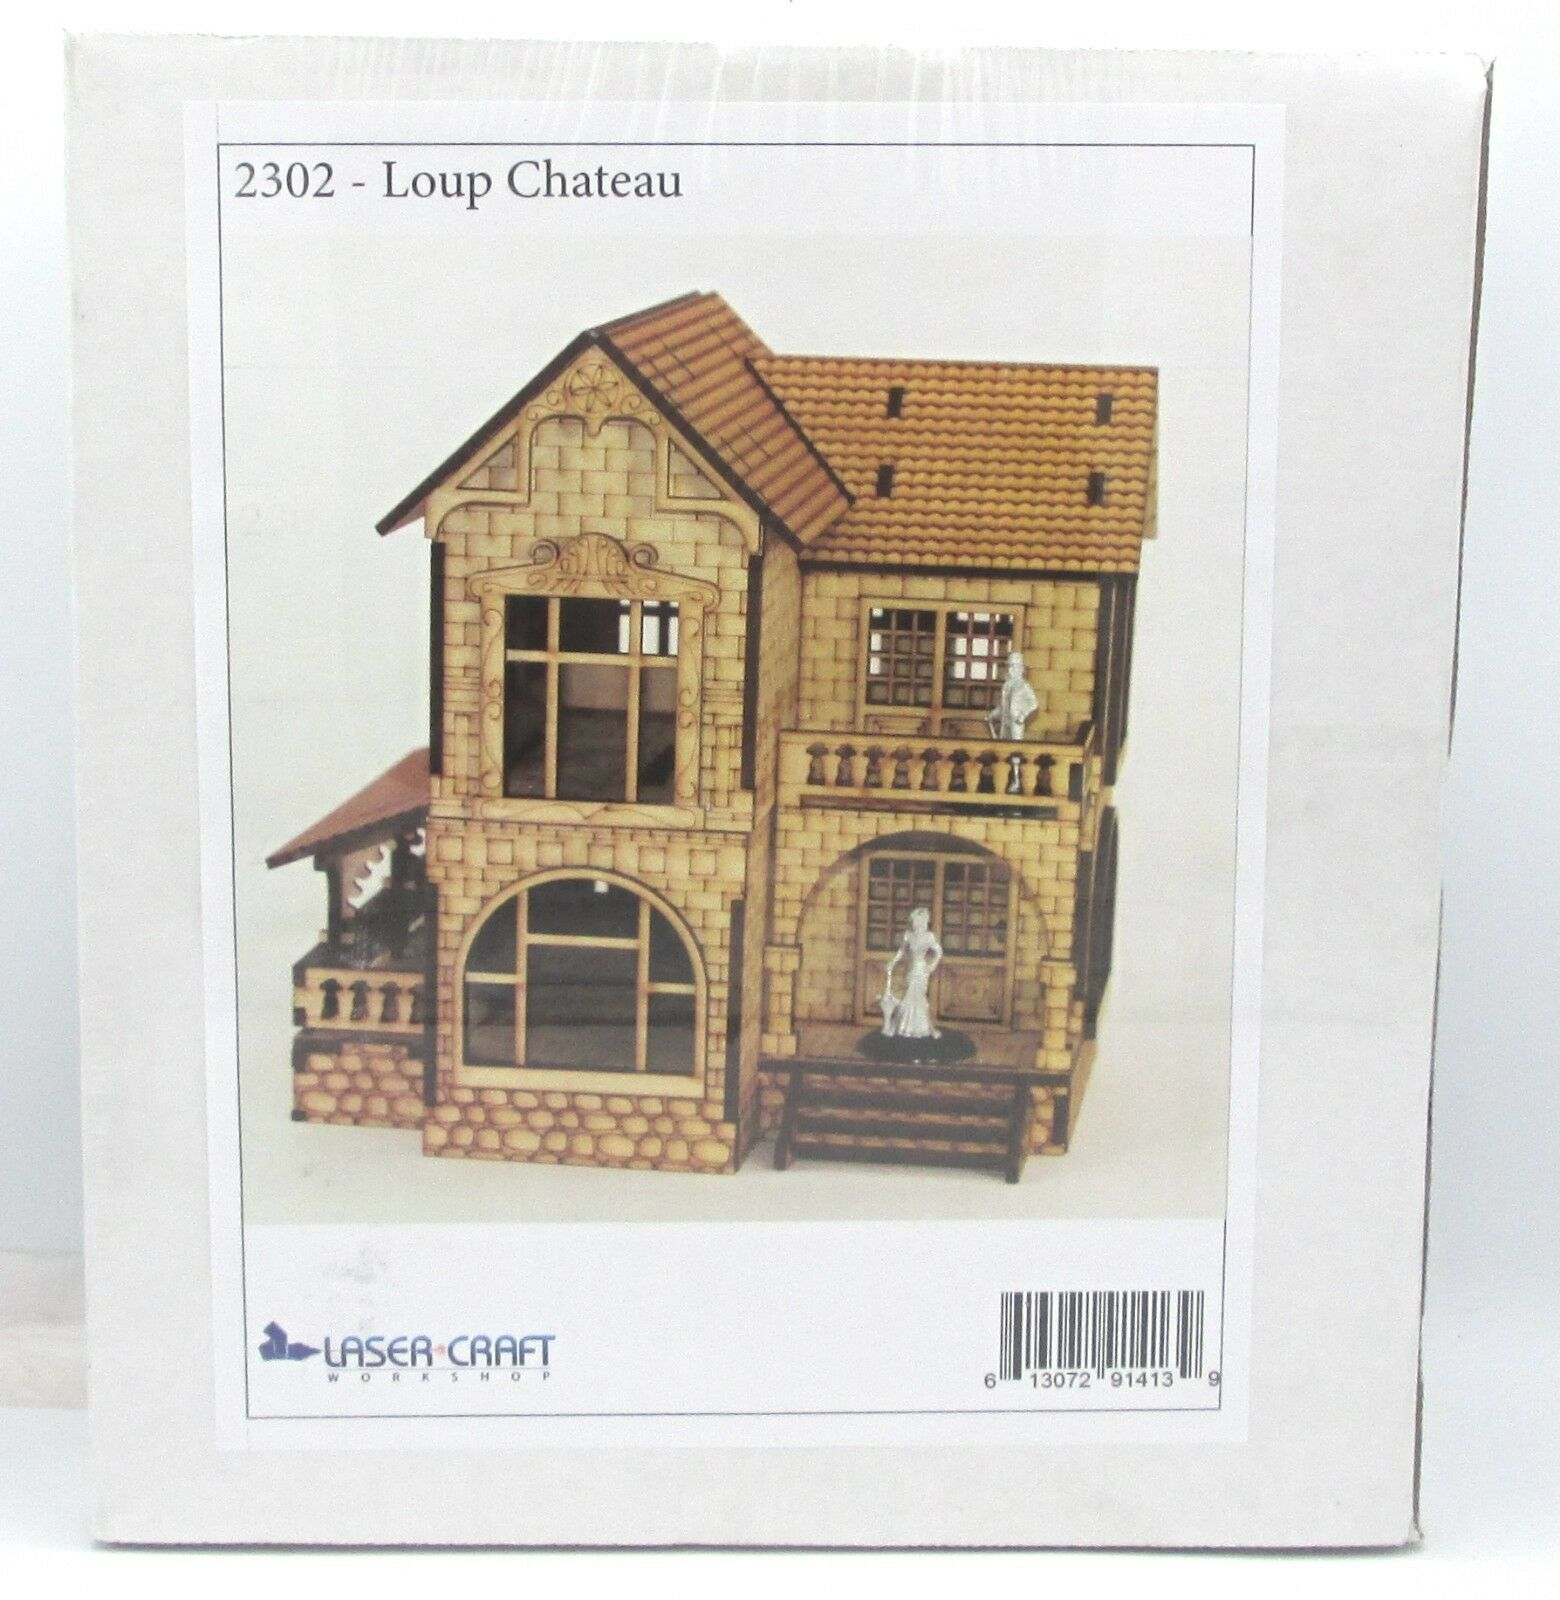 Laser Craft Workshop 2302 Loup Chateau (Victoriana) Terrain Country House NIB